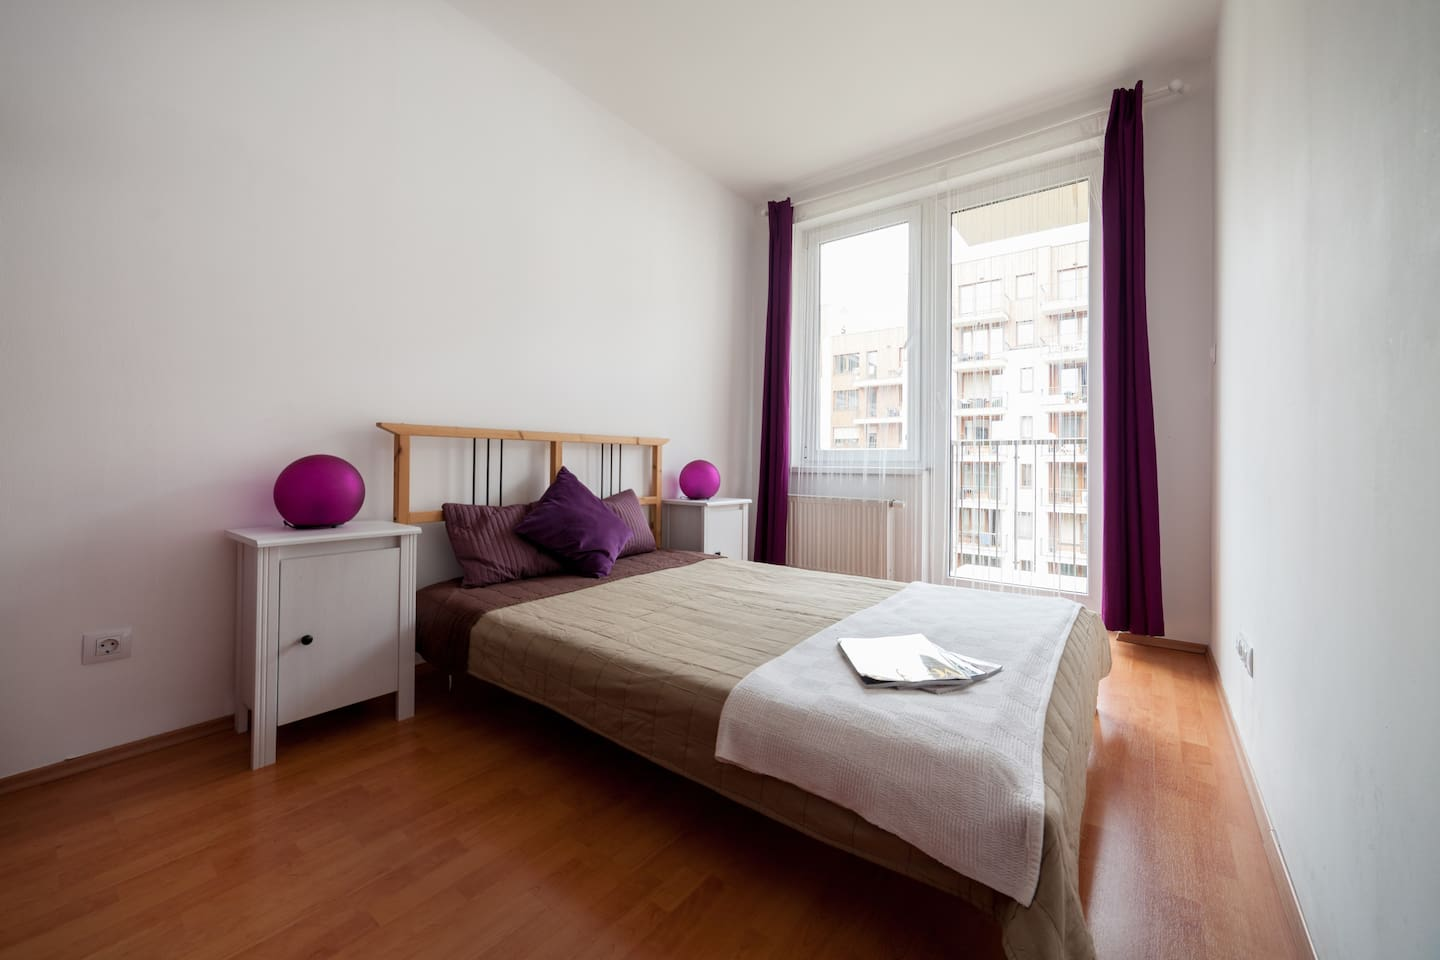 Spacious double bedroom with access to the balcony